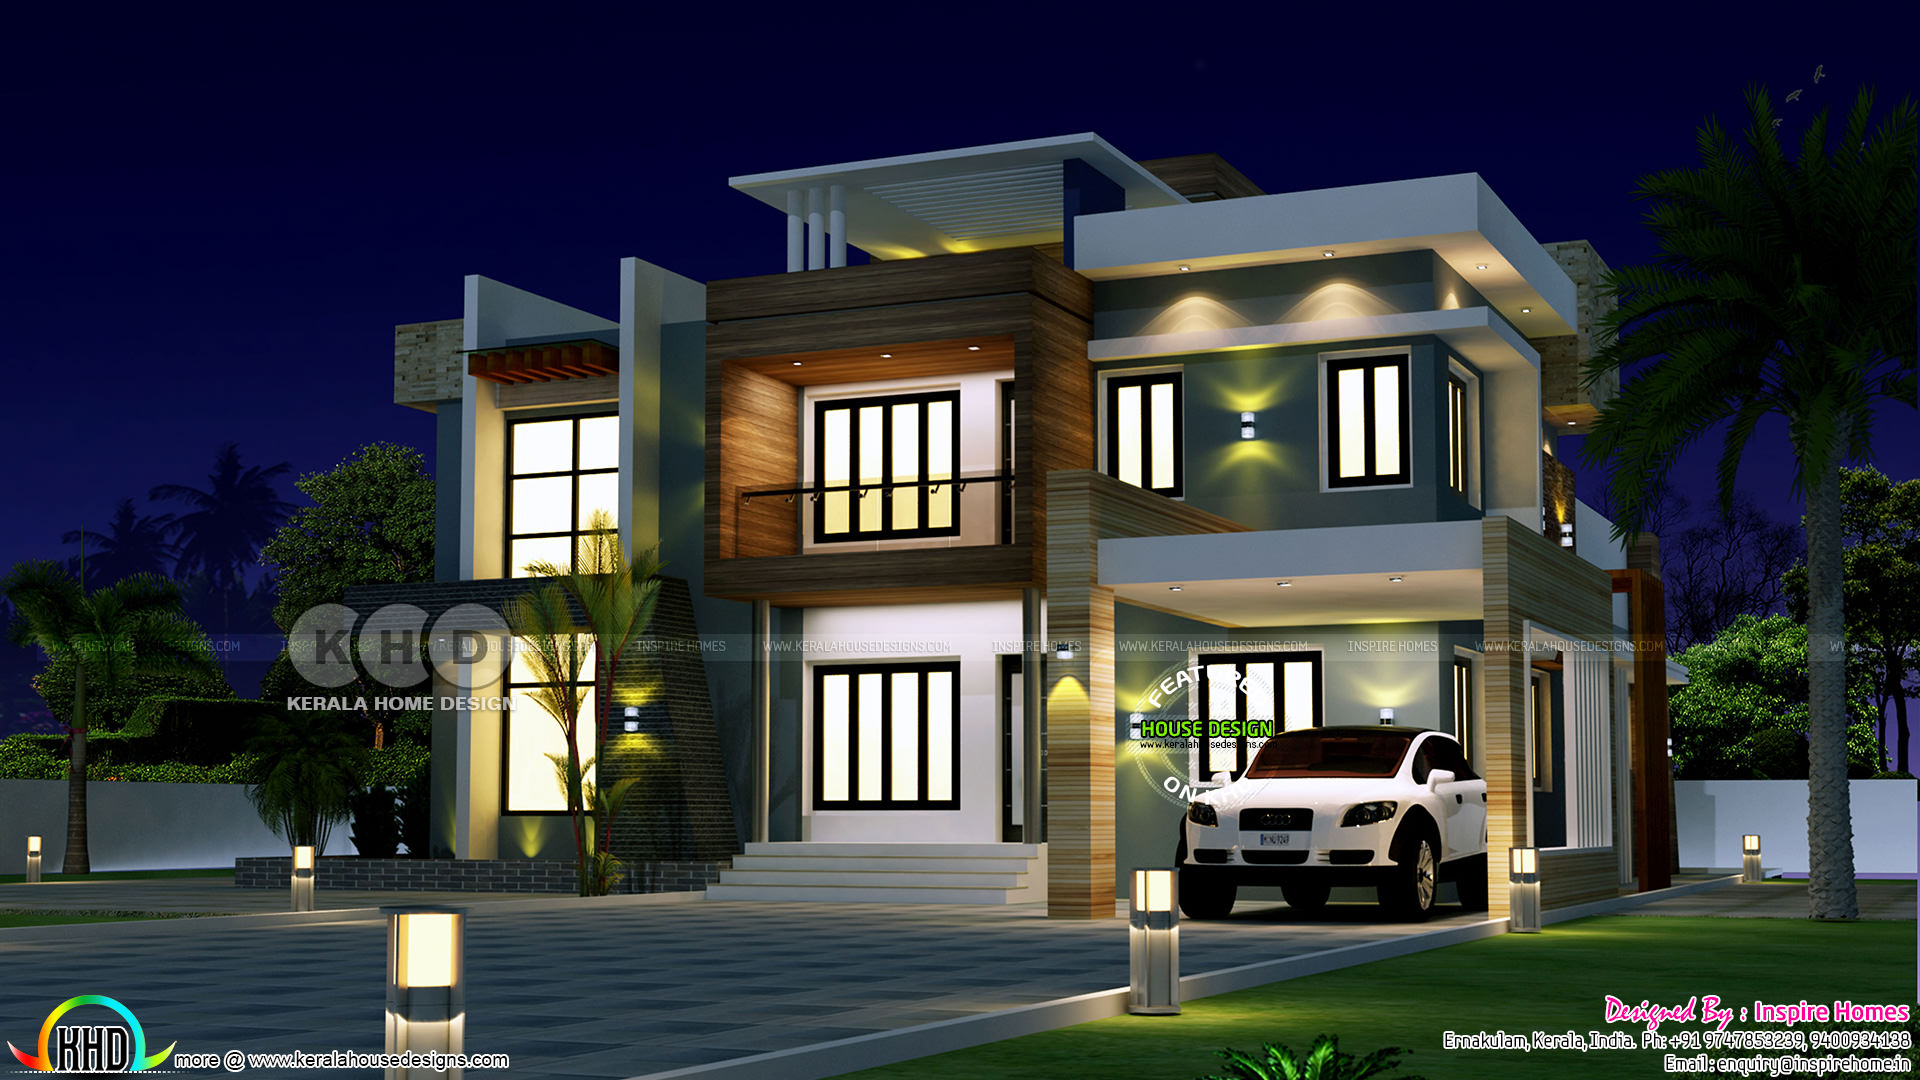 ultra modern house plan with estimated construction cost kerala home design and floor plans. Black Bedroom Furniture Sets. Home Design Ideas